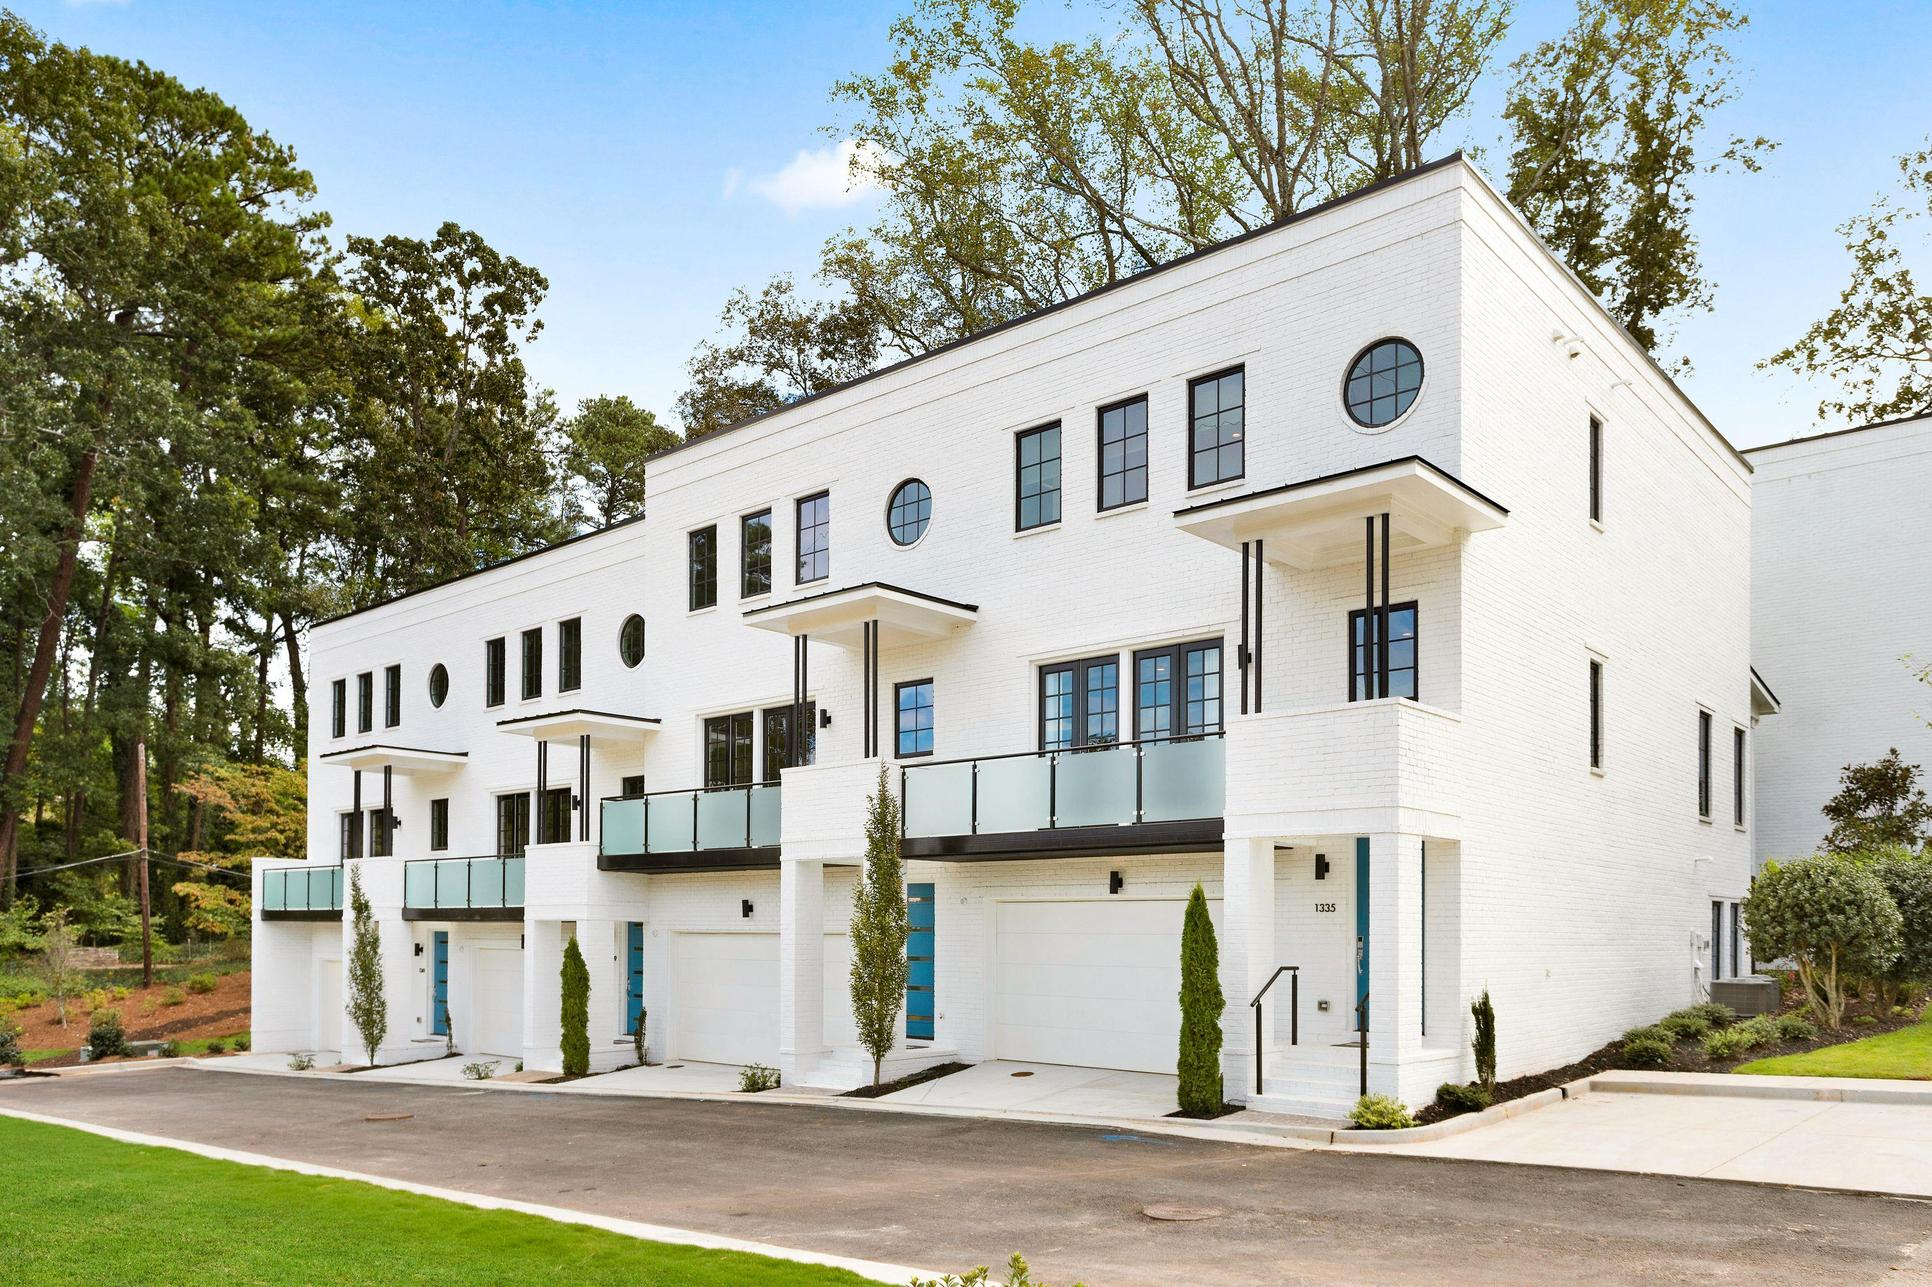 Sophia - Luxury Townhomes:Private Gated Community with Just 24 Residences